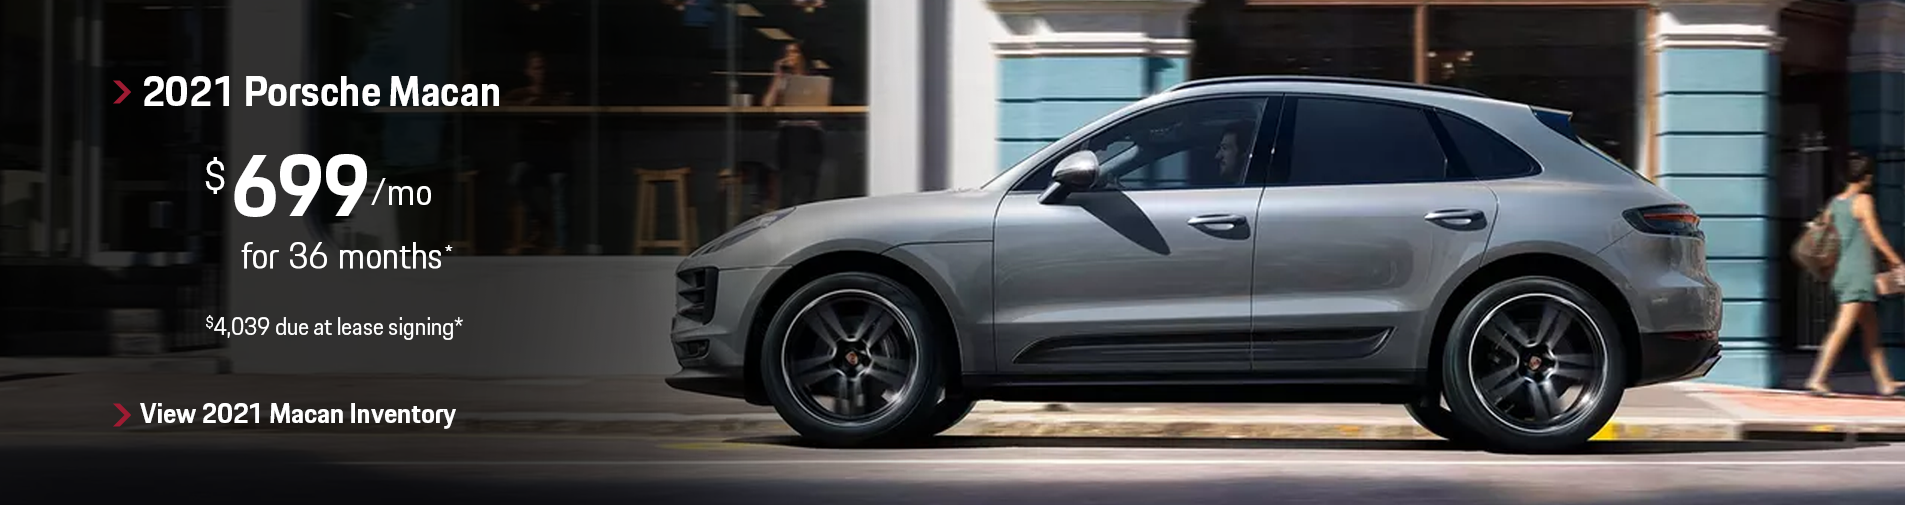 2021 Porsche Macan Lease Offer